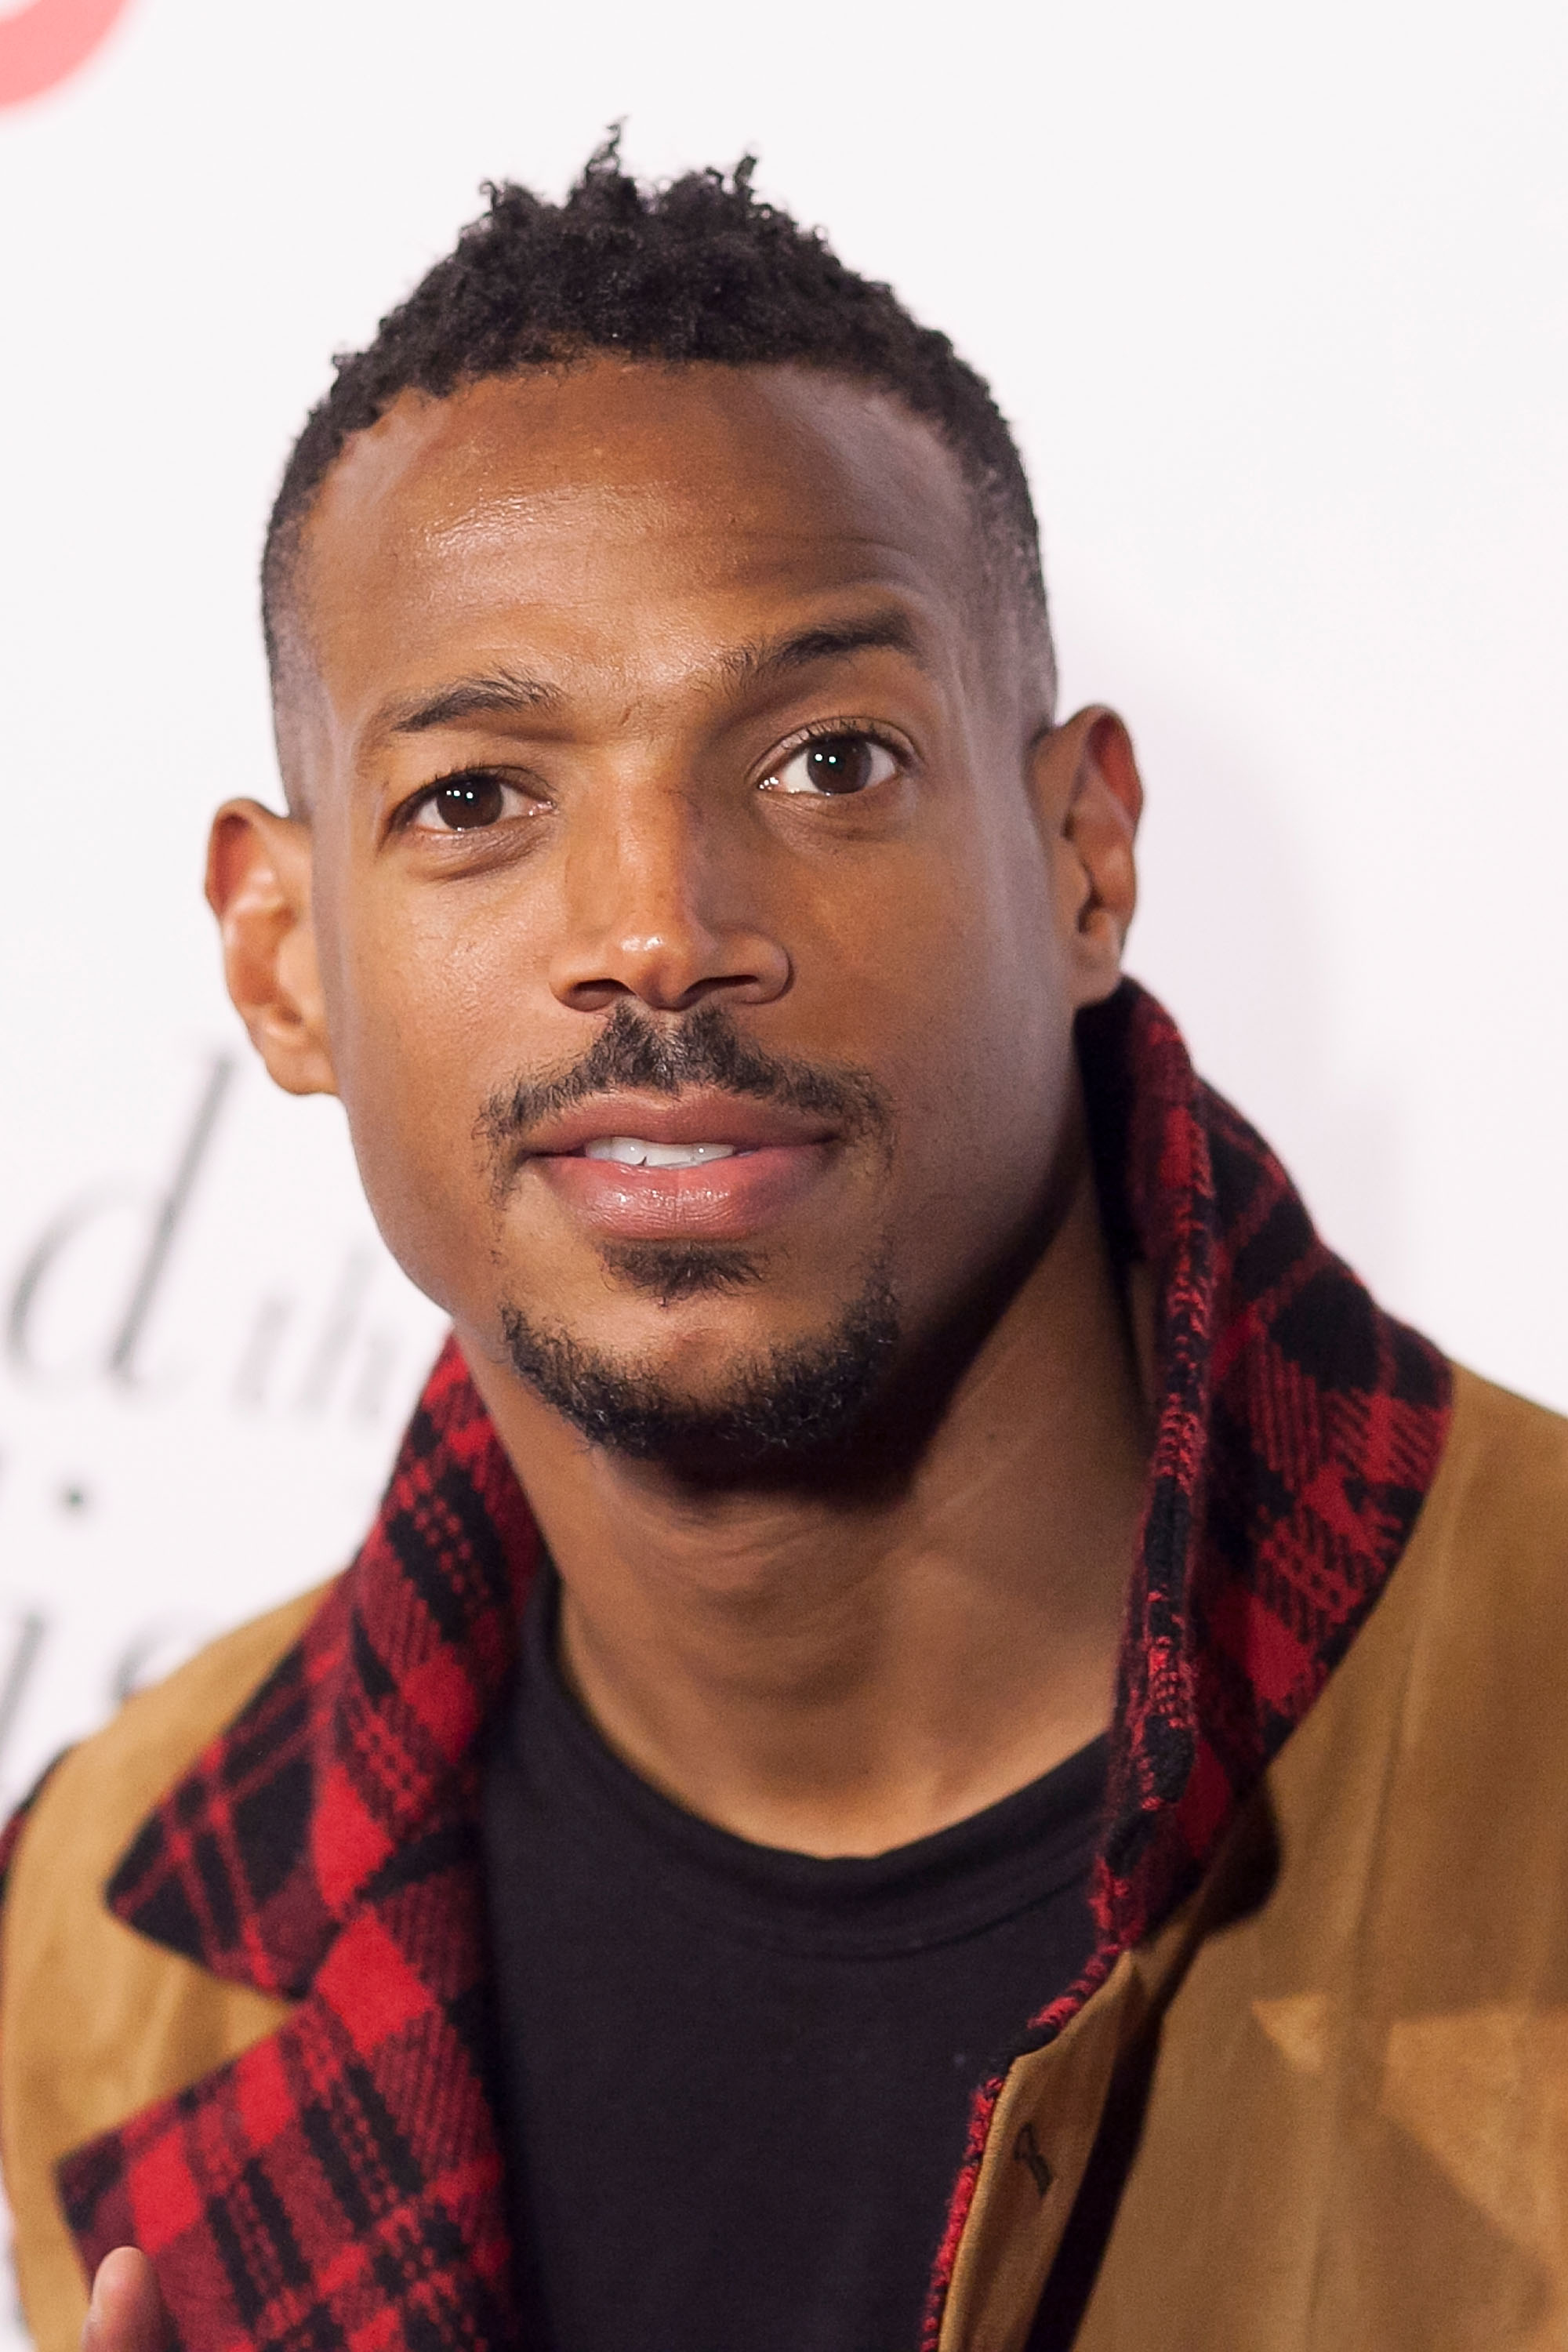 Marlon Wayans arrives for  Beyond The Lights  - Los Angeles Premiere at ArcLight Hollywood on November 12, 2014 in Hollywood, California.